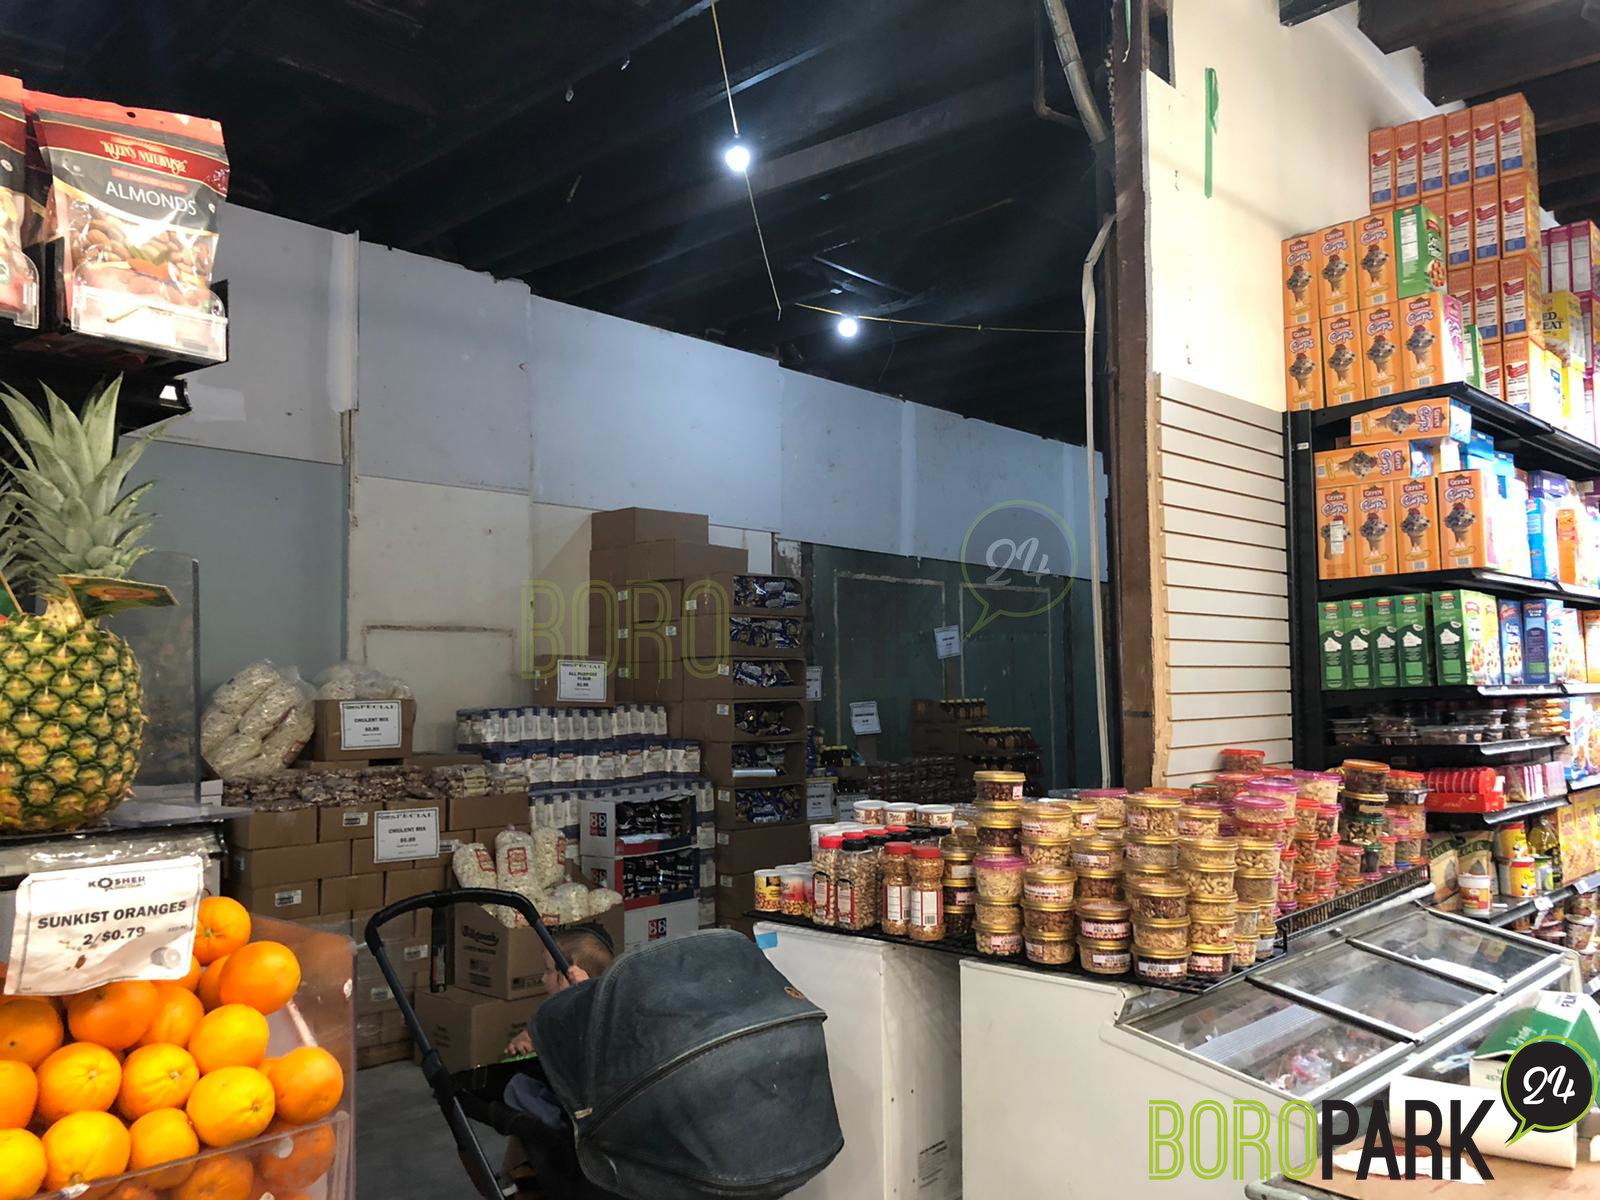 Kosher Discount, a 13th Ave Grocery Store, Expands Next Door